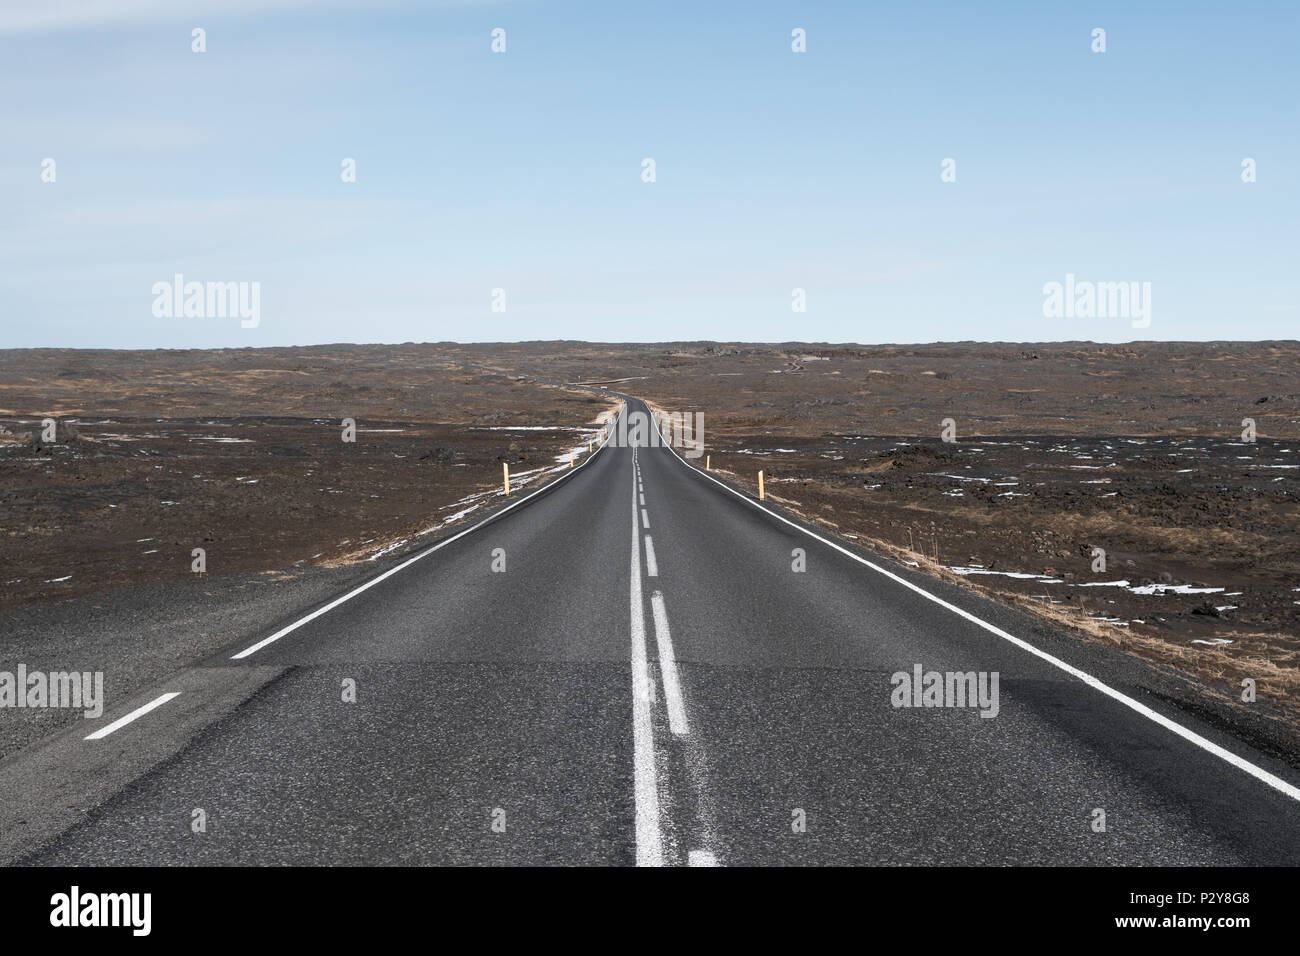 Empty Icelandic road stretching off into the horizon through lava fields on a clear sunny day. - Stock Image